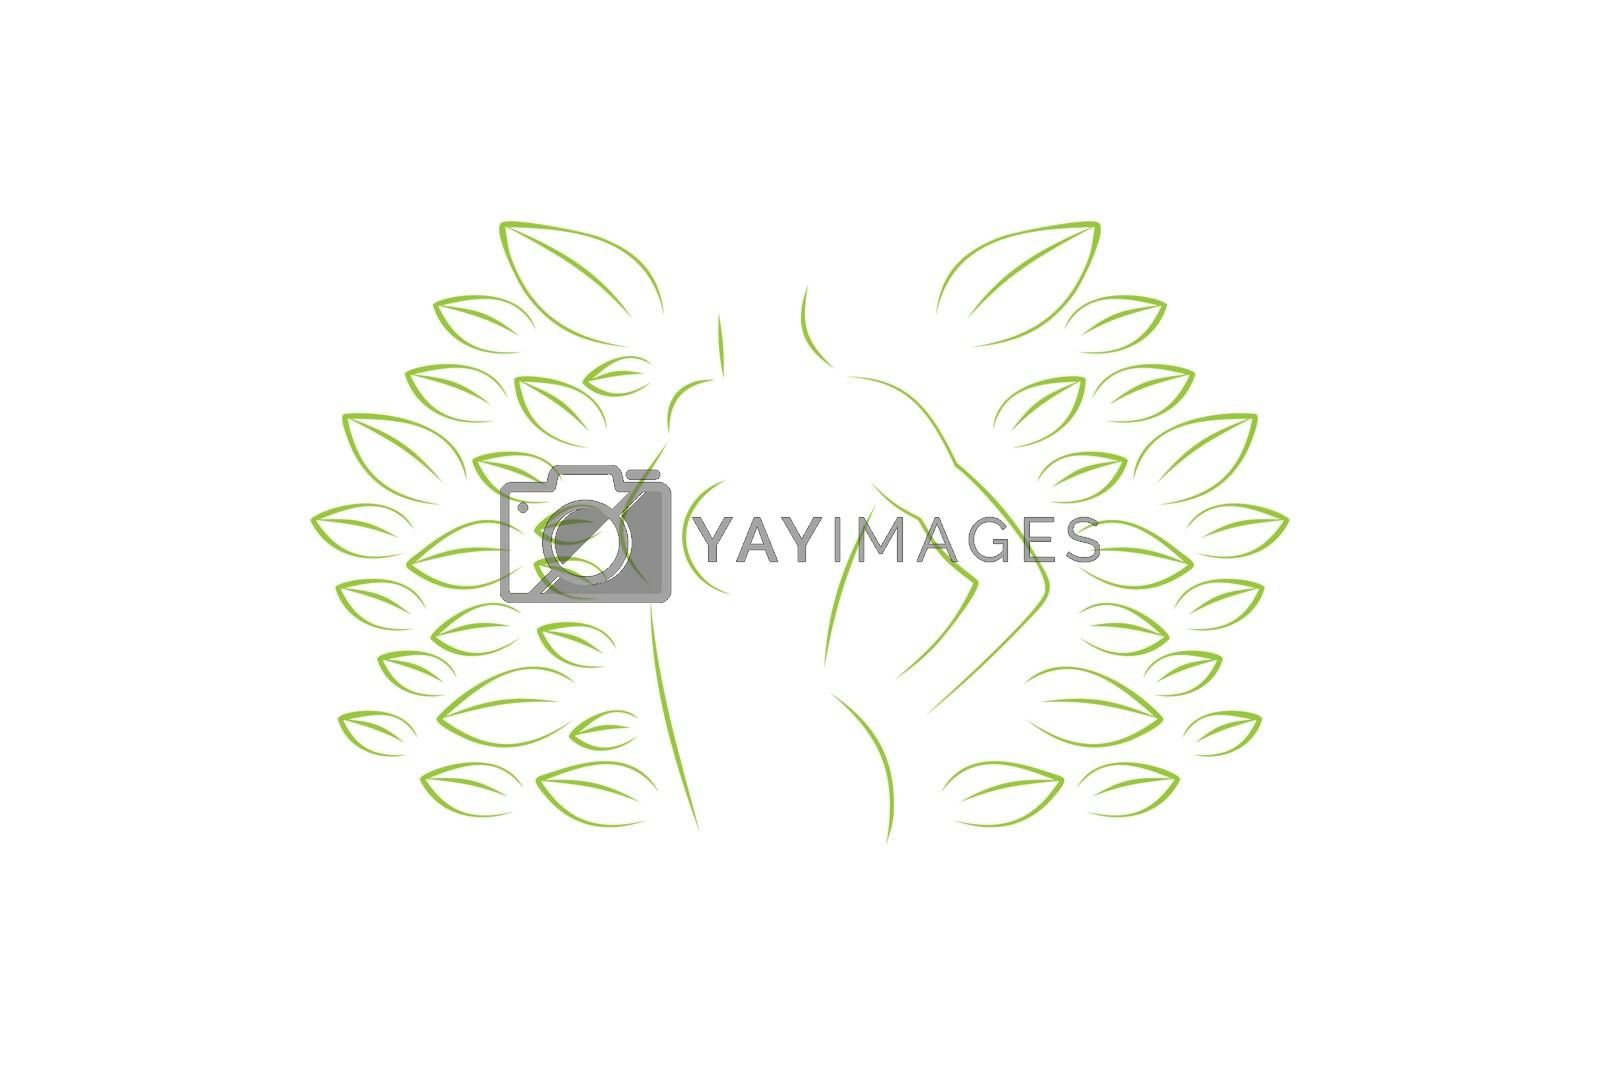 silhouette woman body and leaf, woman health logo Designs Inspiration Isolated on White Background